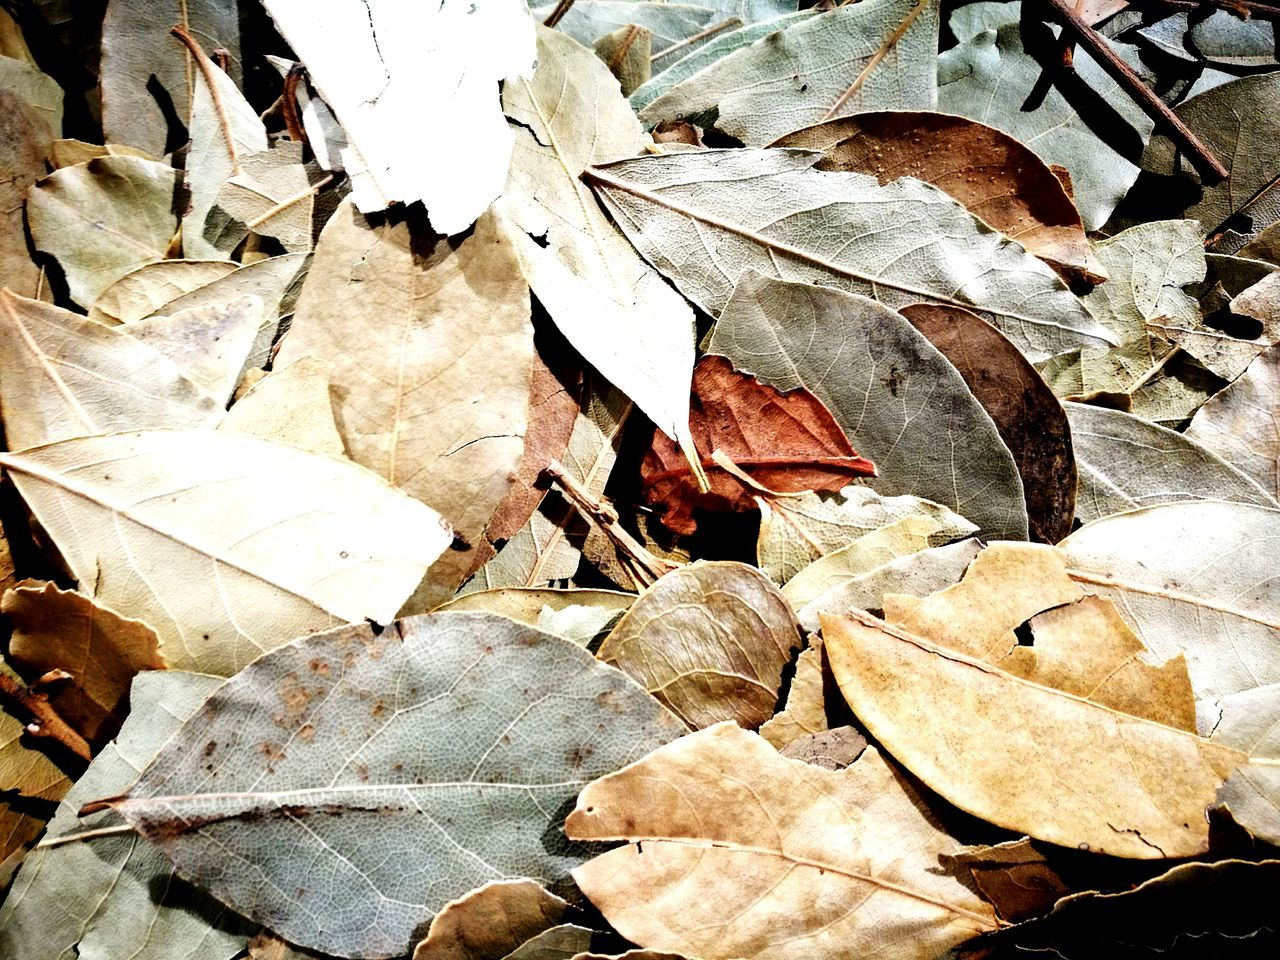 leaf, autumn, change, nature, day, outdoors, abundance, no people, large group of objects, fragility, close-up